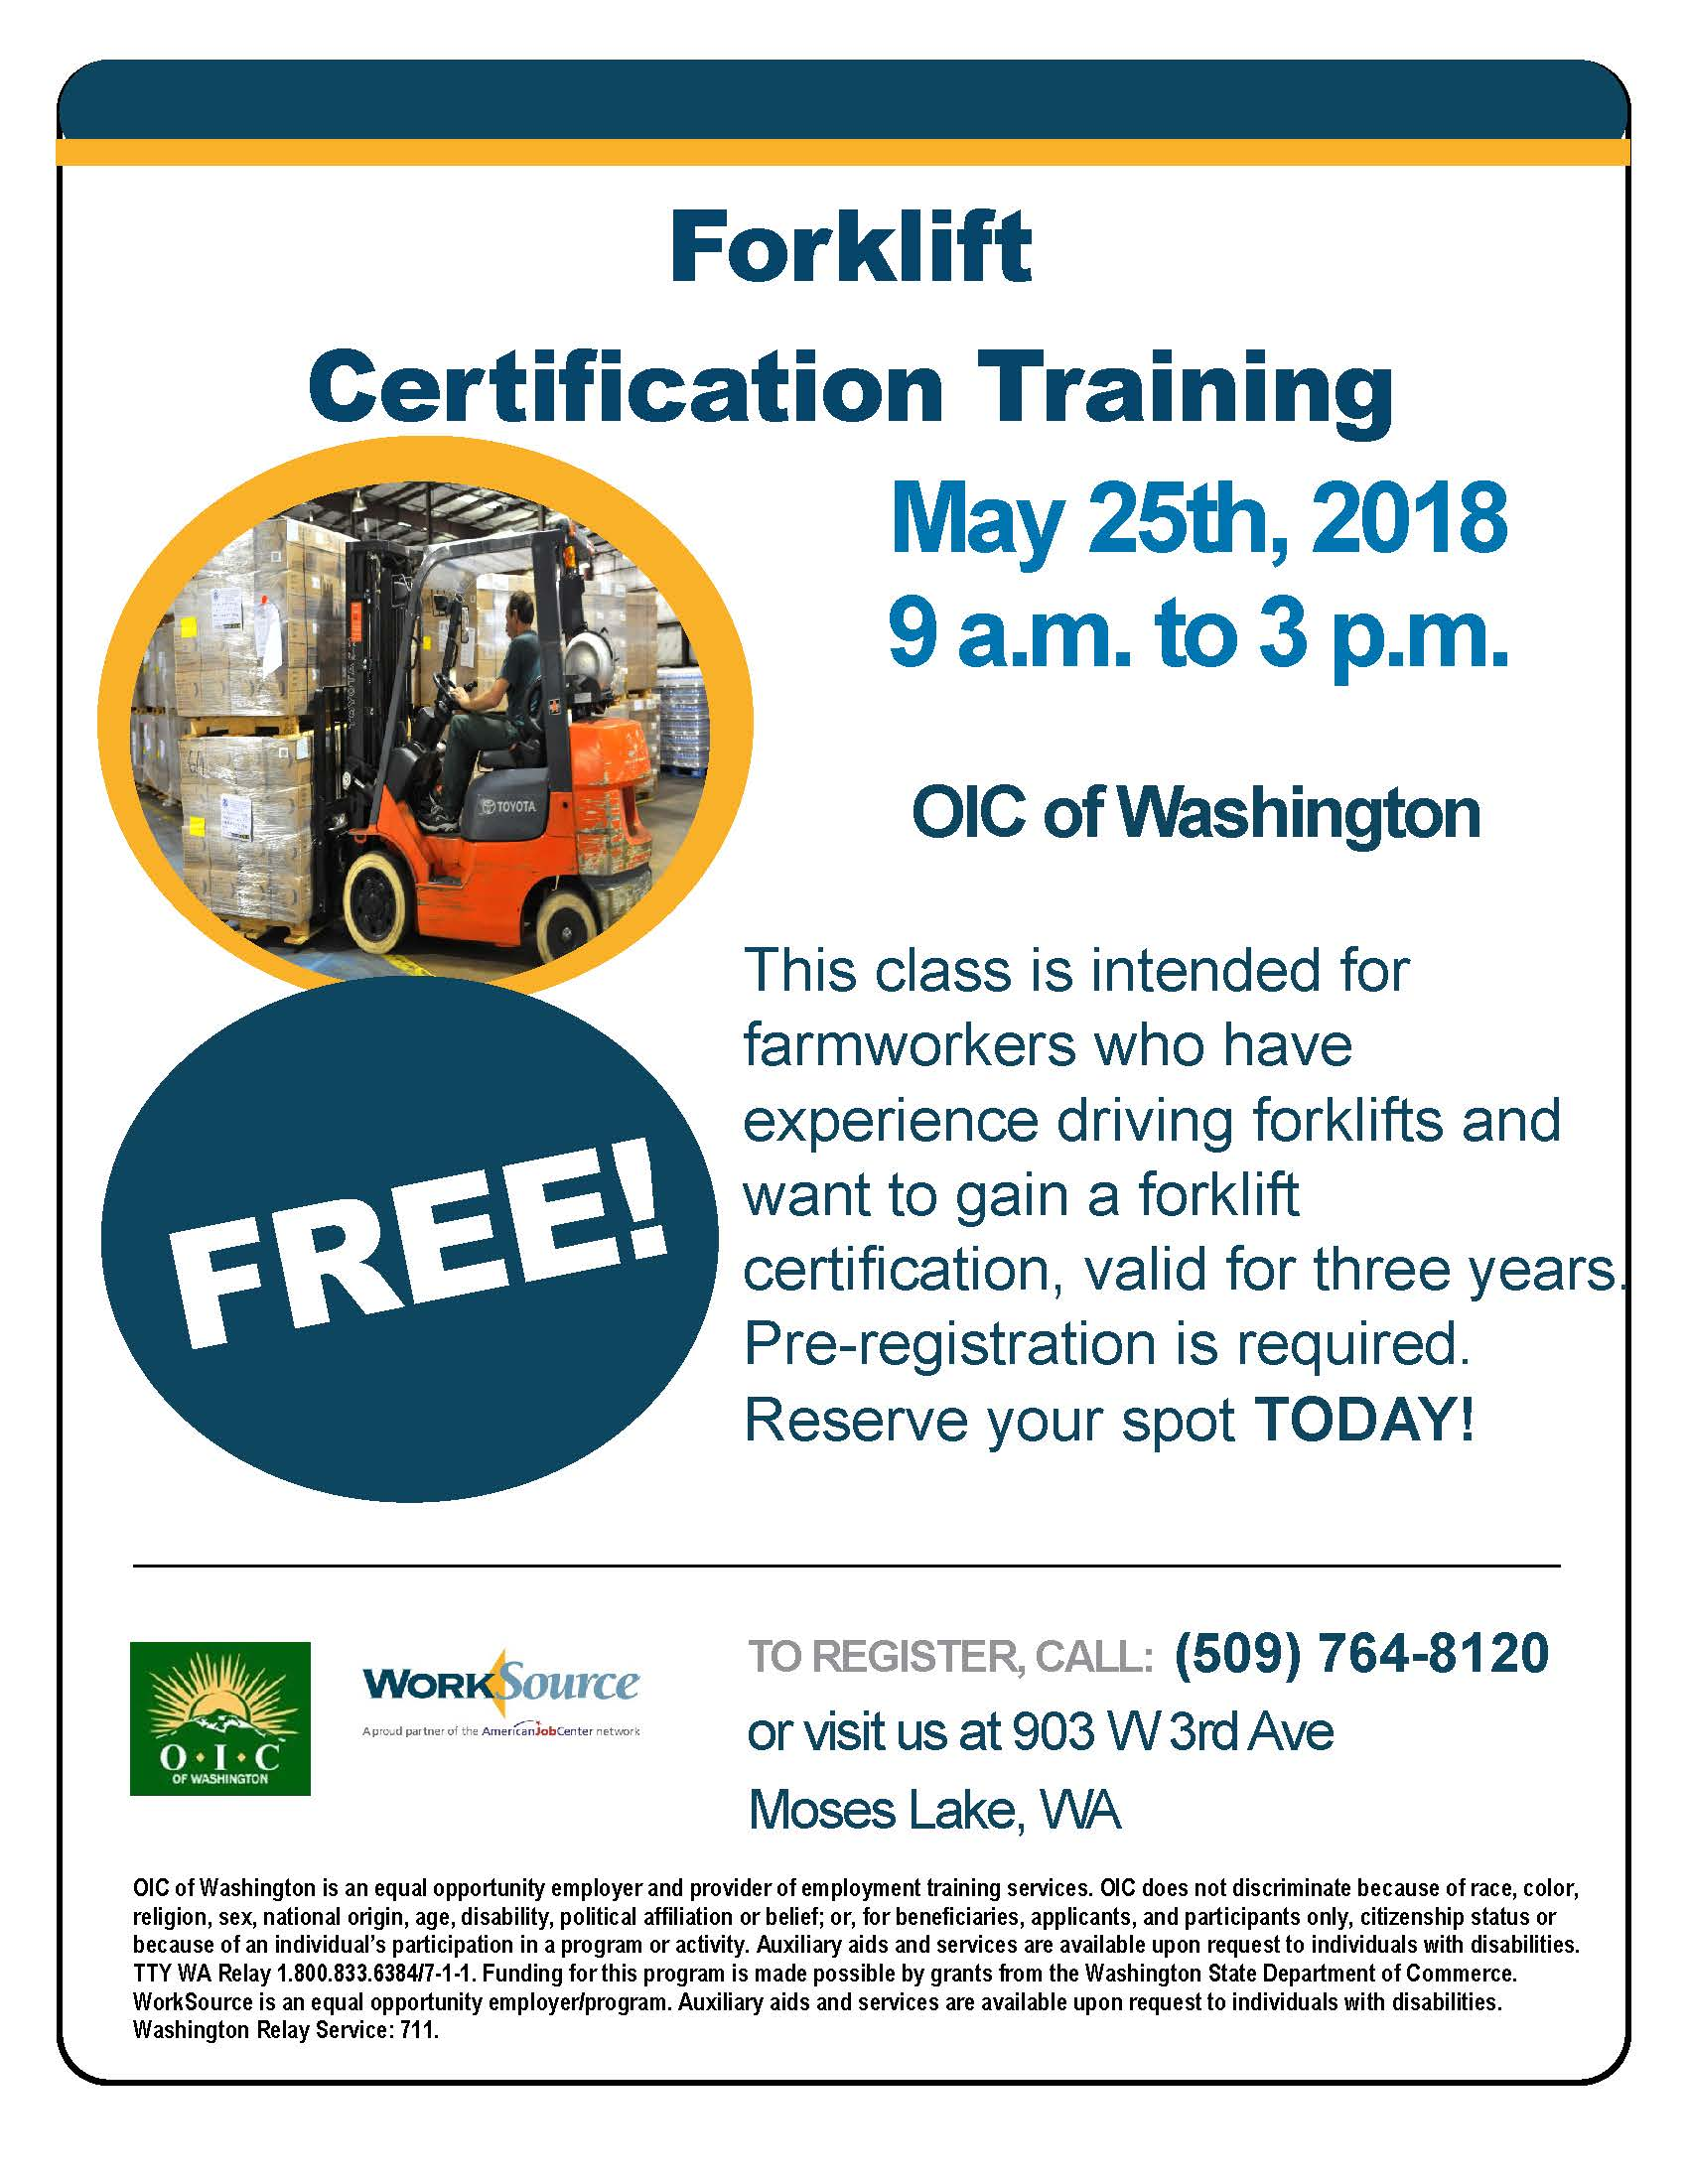 Forklift Certification Training May 25 2018